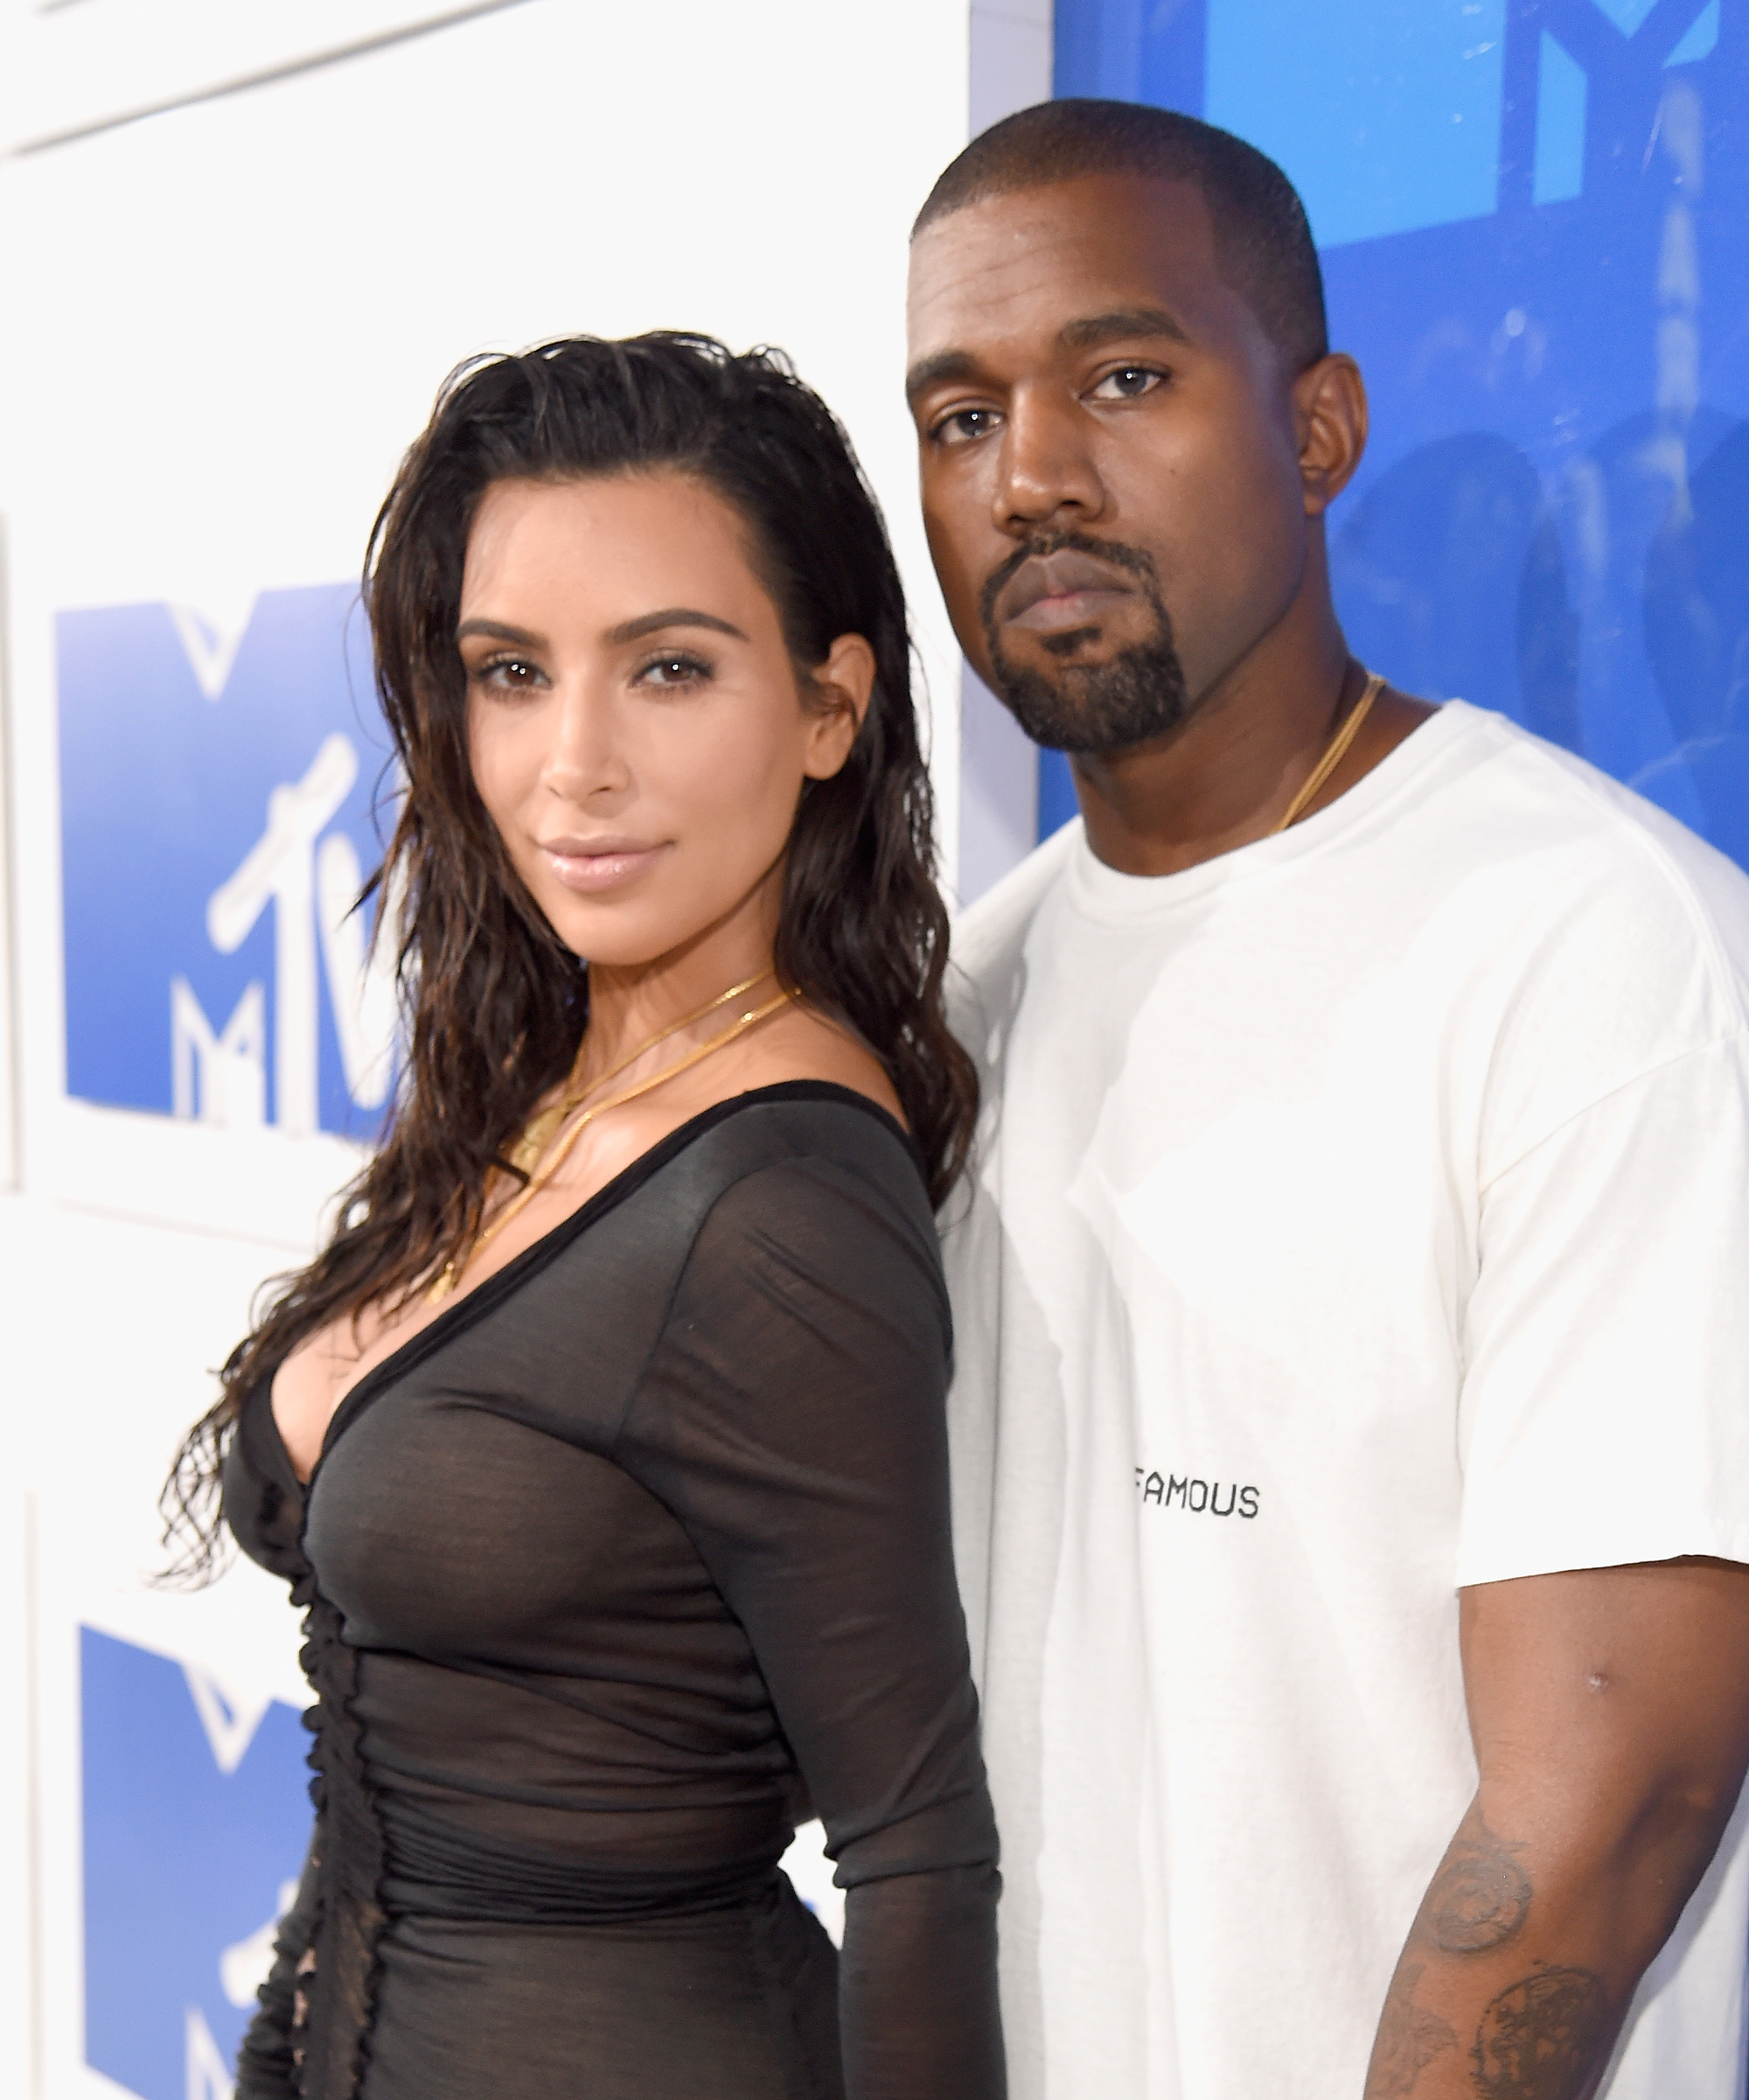 Kim Kardashian and Kanye West Share the First Glimpse of Baby #4 — Find Out His Name